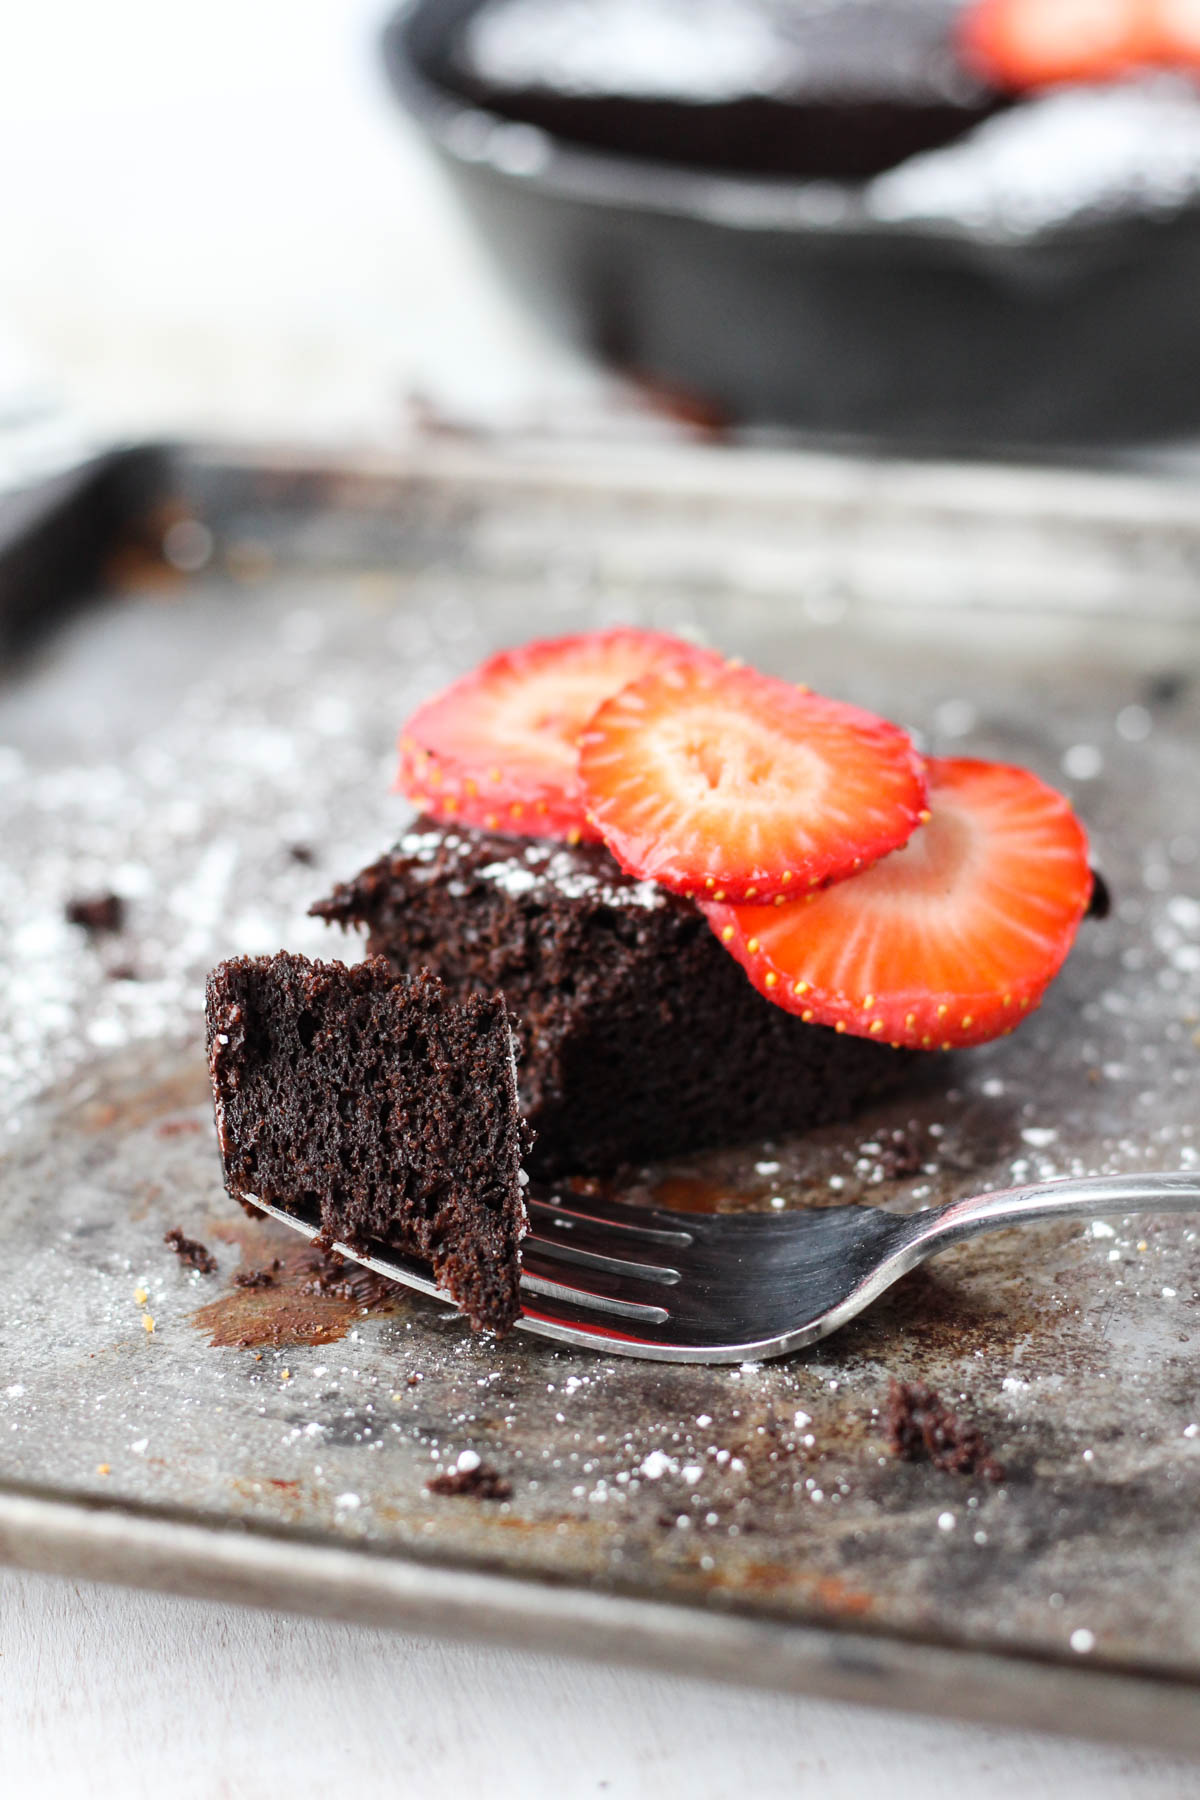 Fork with a bite of chocolate cake.